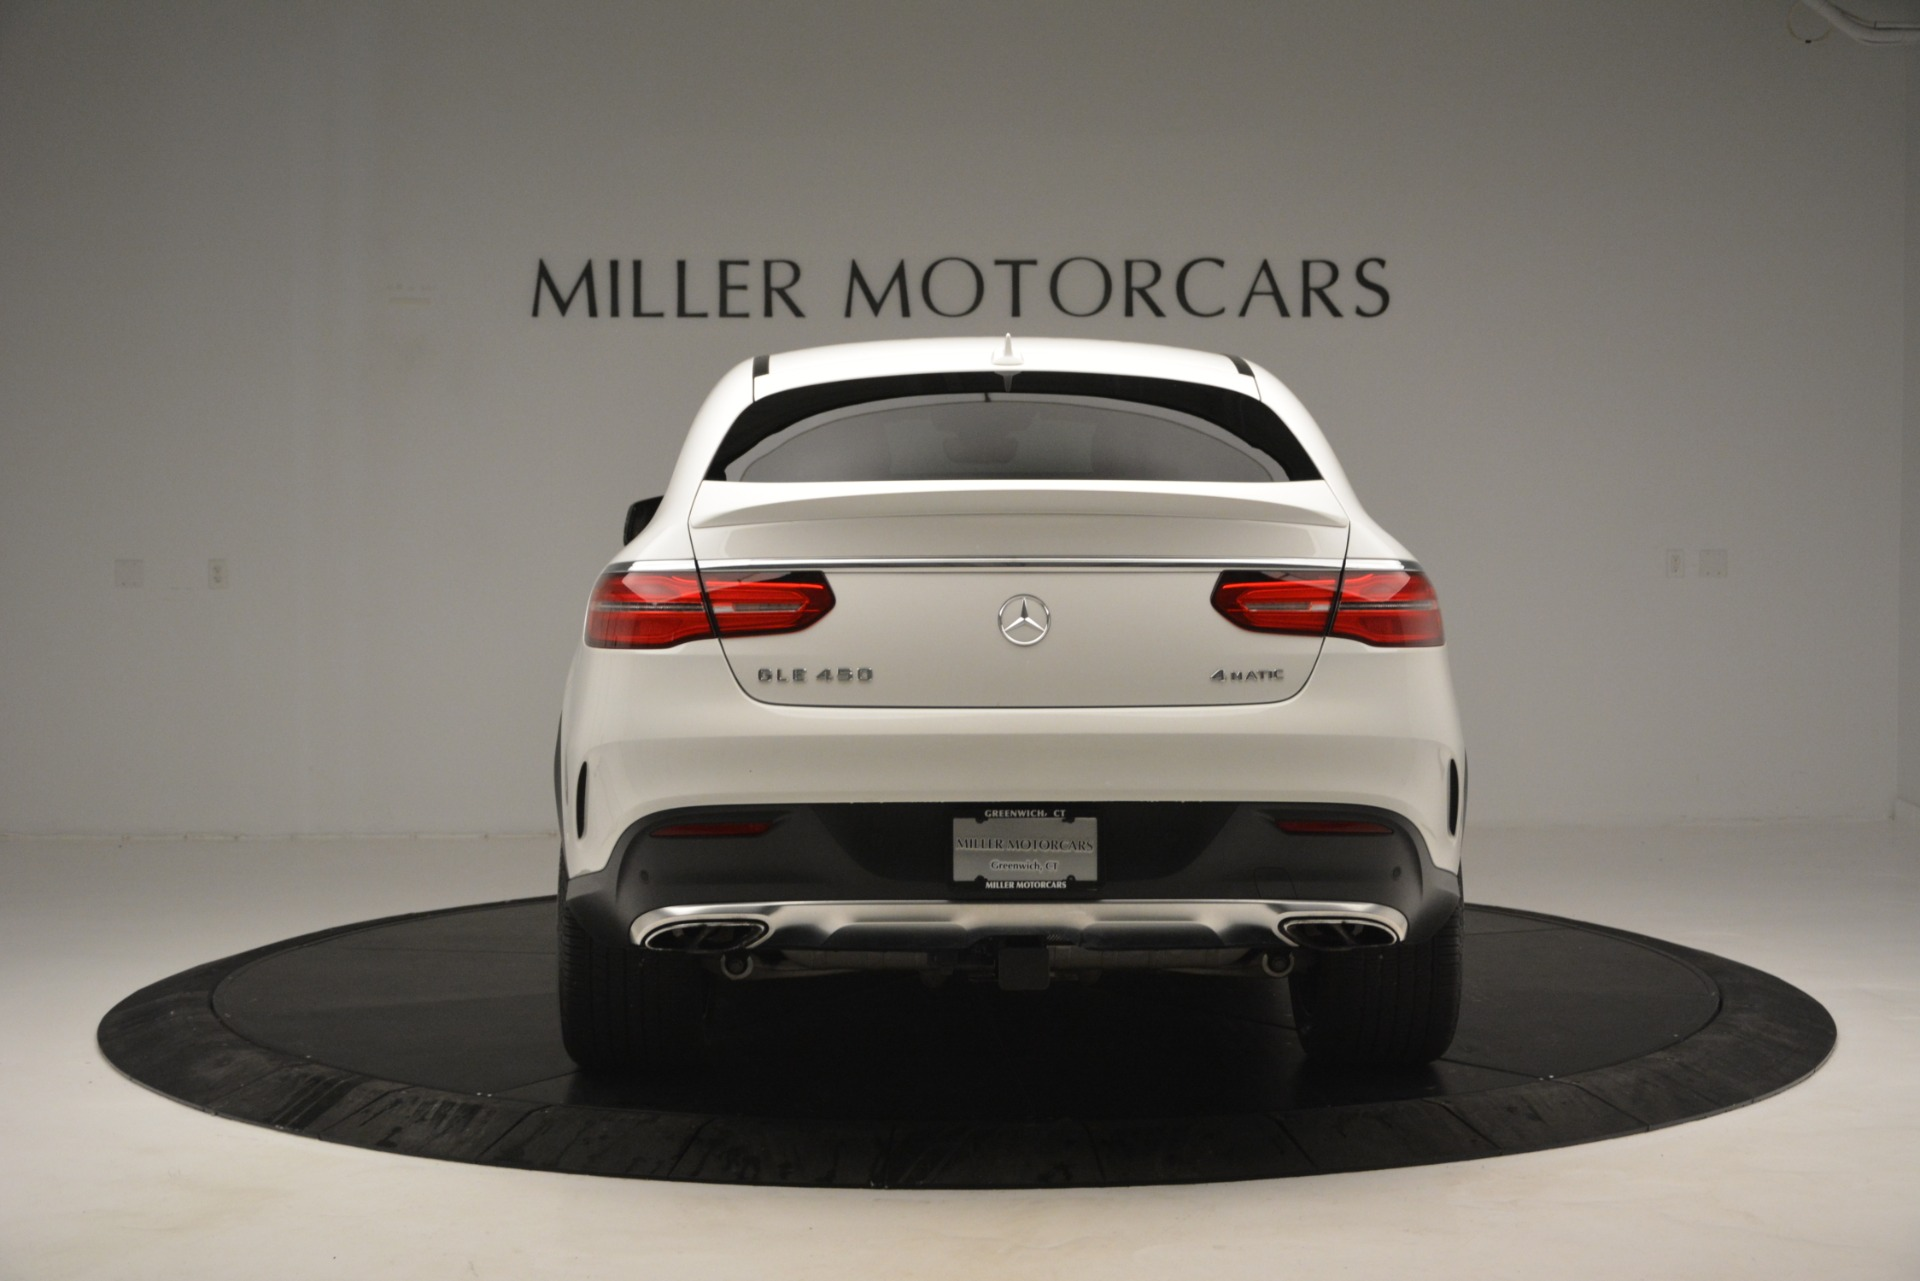 Used 2016 Mercedes-Benz GLE 450 AMG Coupe 4MATIC For Sale In Greenwich, CT 2787_p6